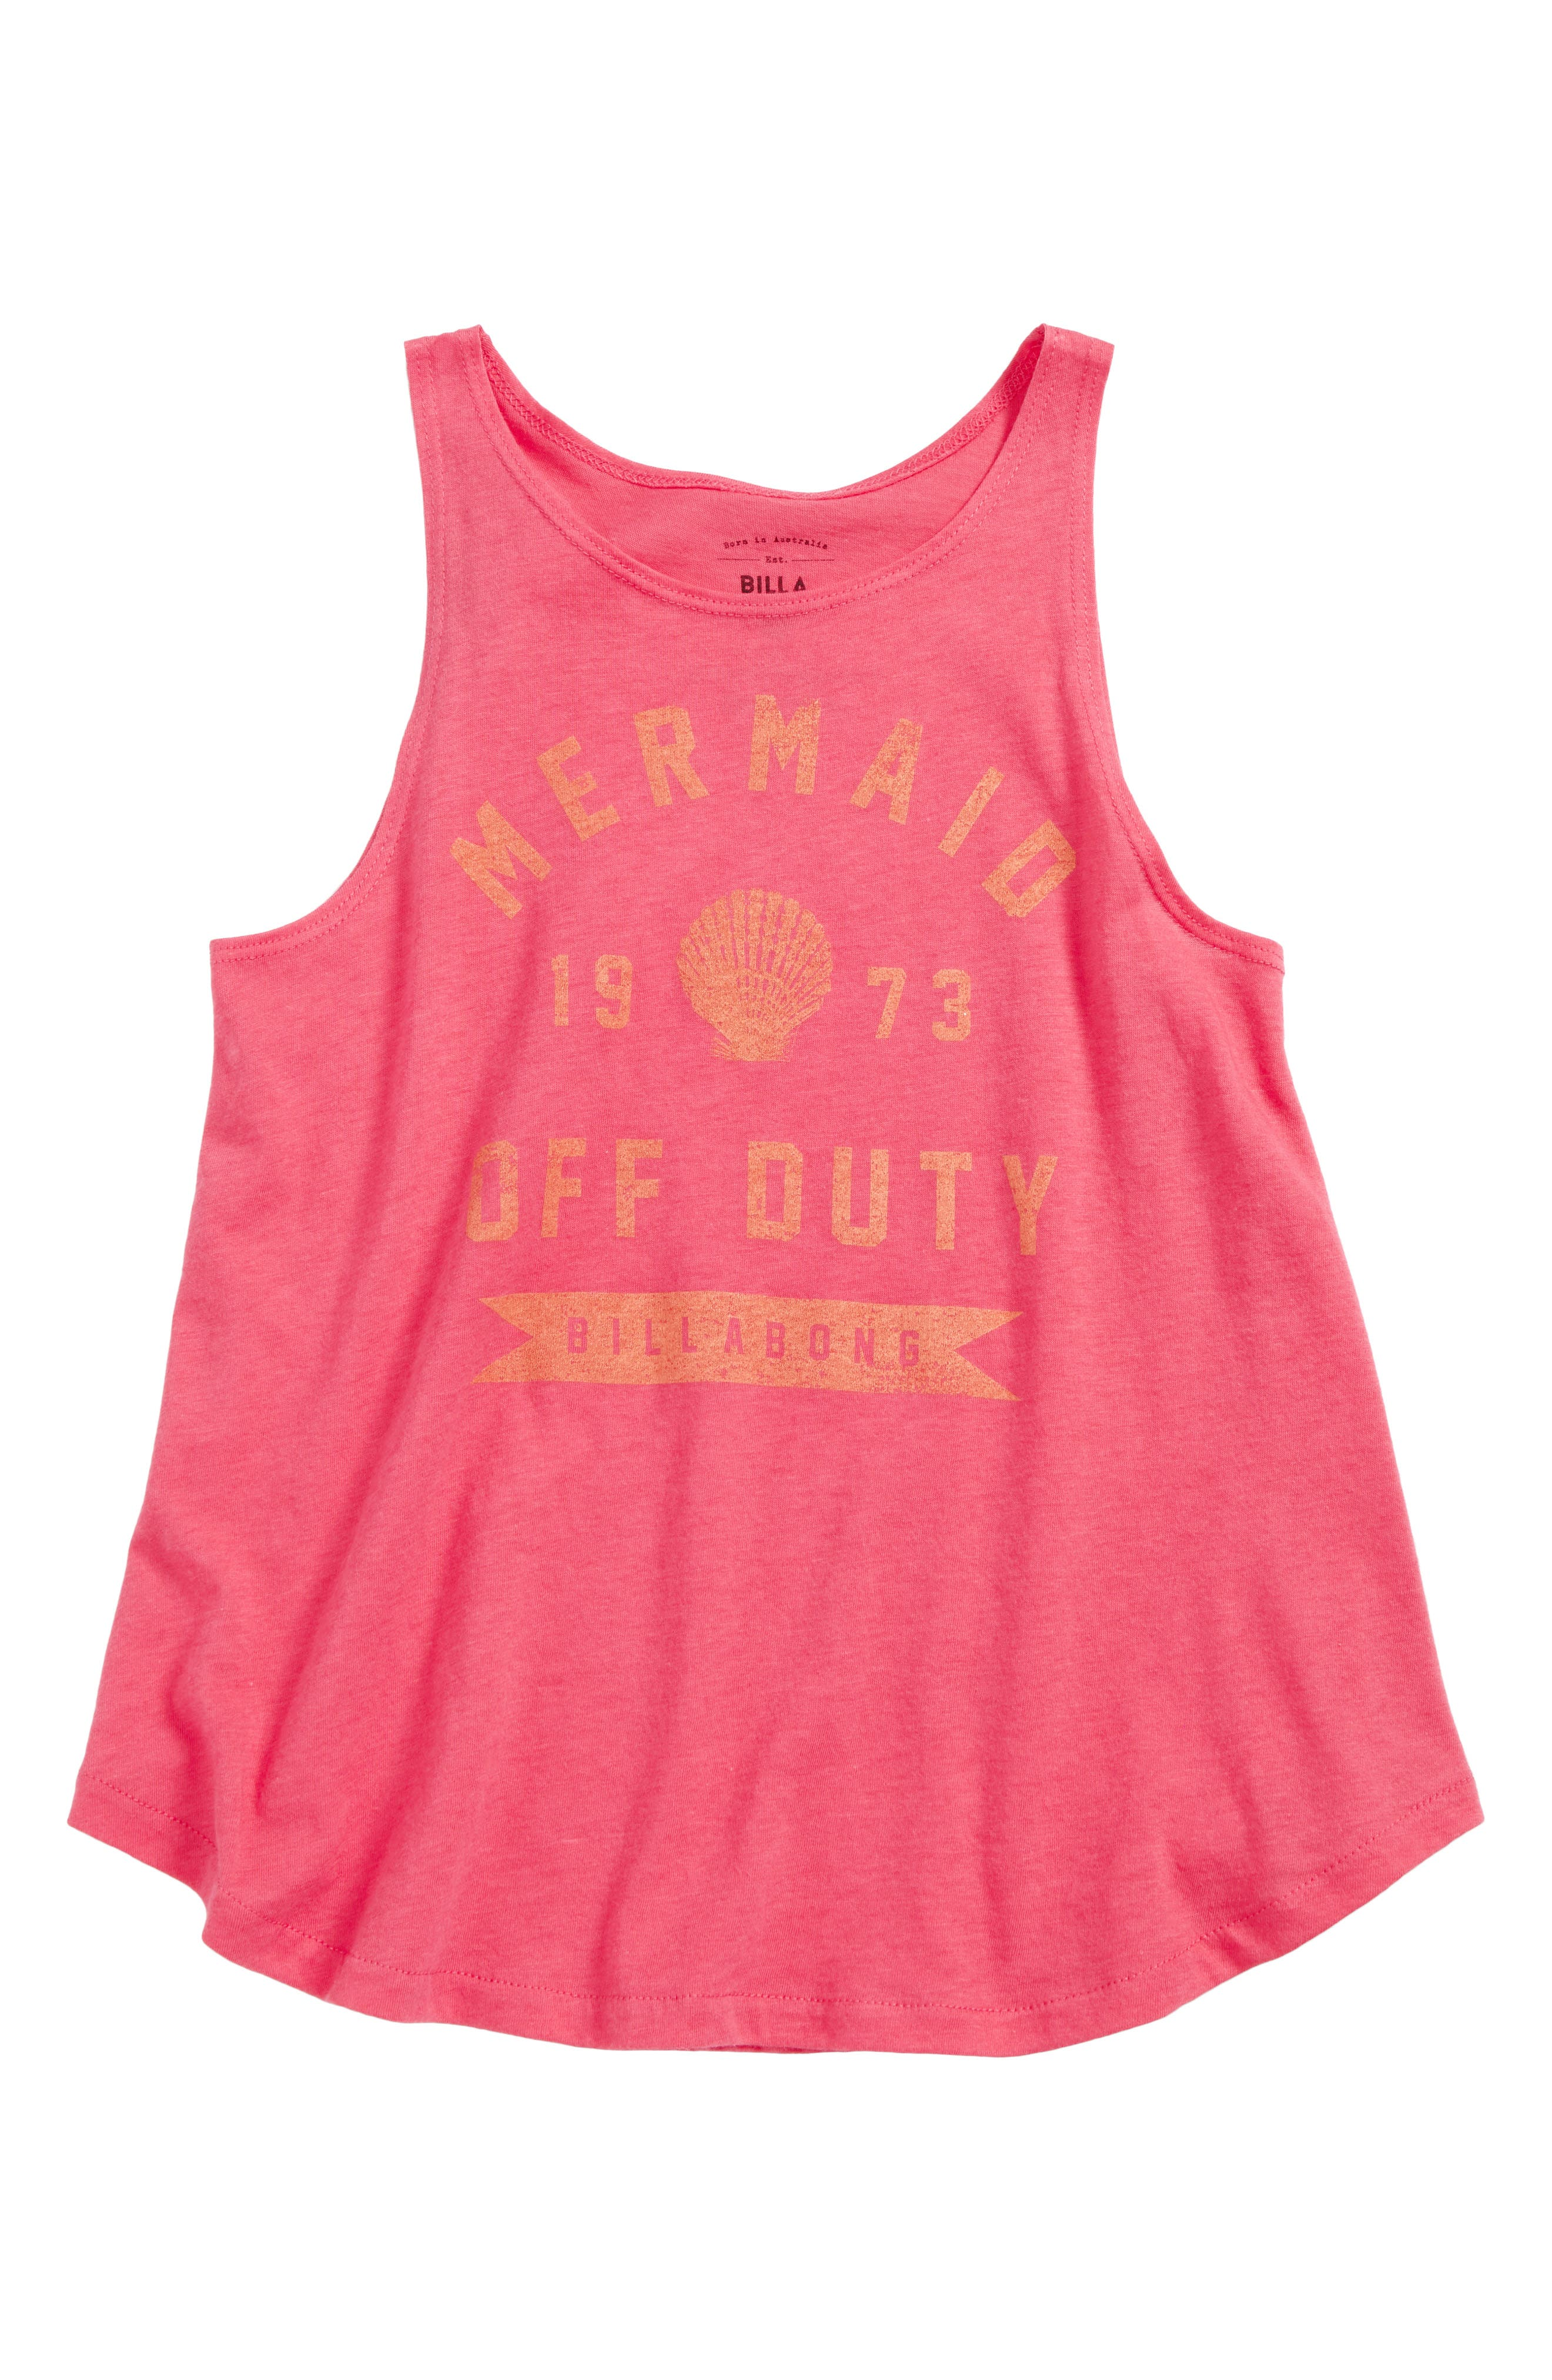 Off Duty Mermaid Graphic Tank,                             Main thumbnail 1, color,                             Passion Fruit